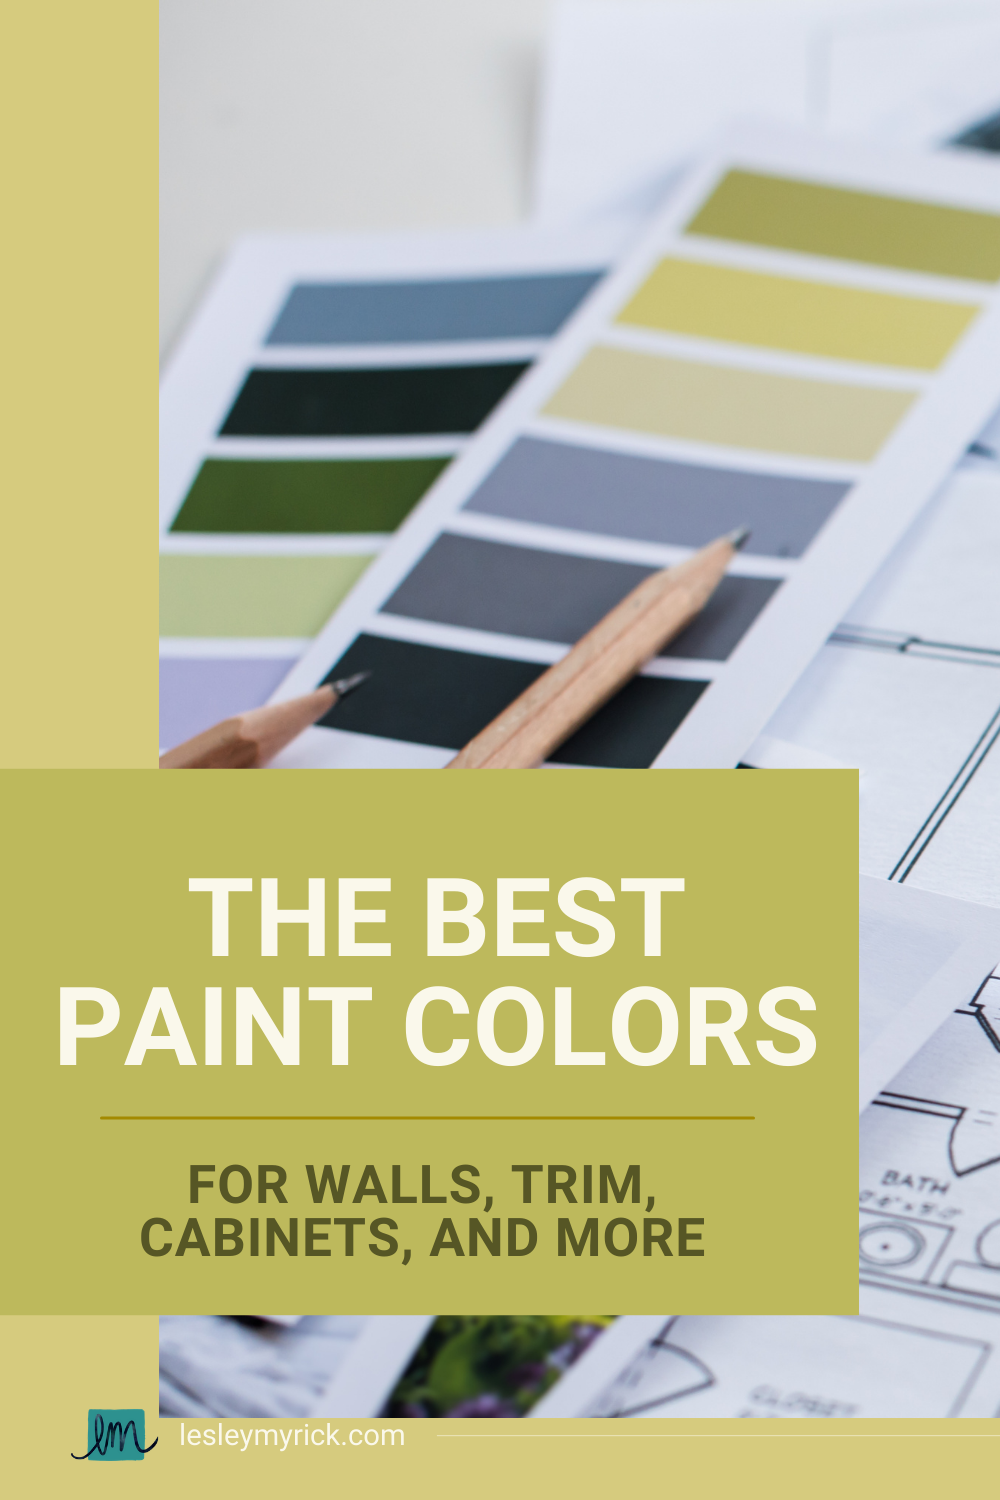 The best paint colors for walls, trim, cabinets and more - curated by interior designer Lesley Myrick